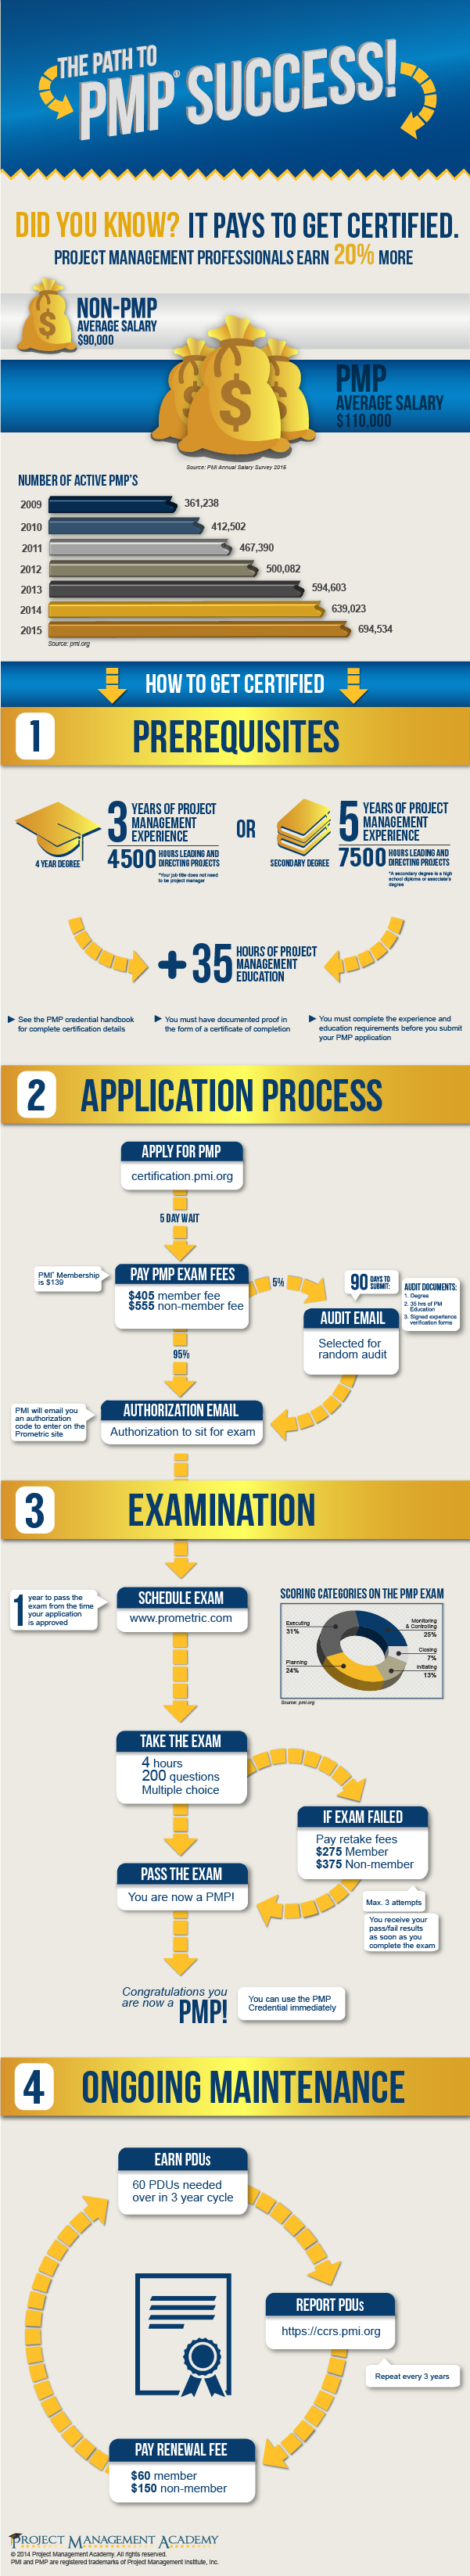 pmp-certification-process